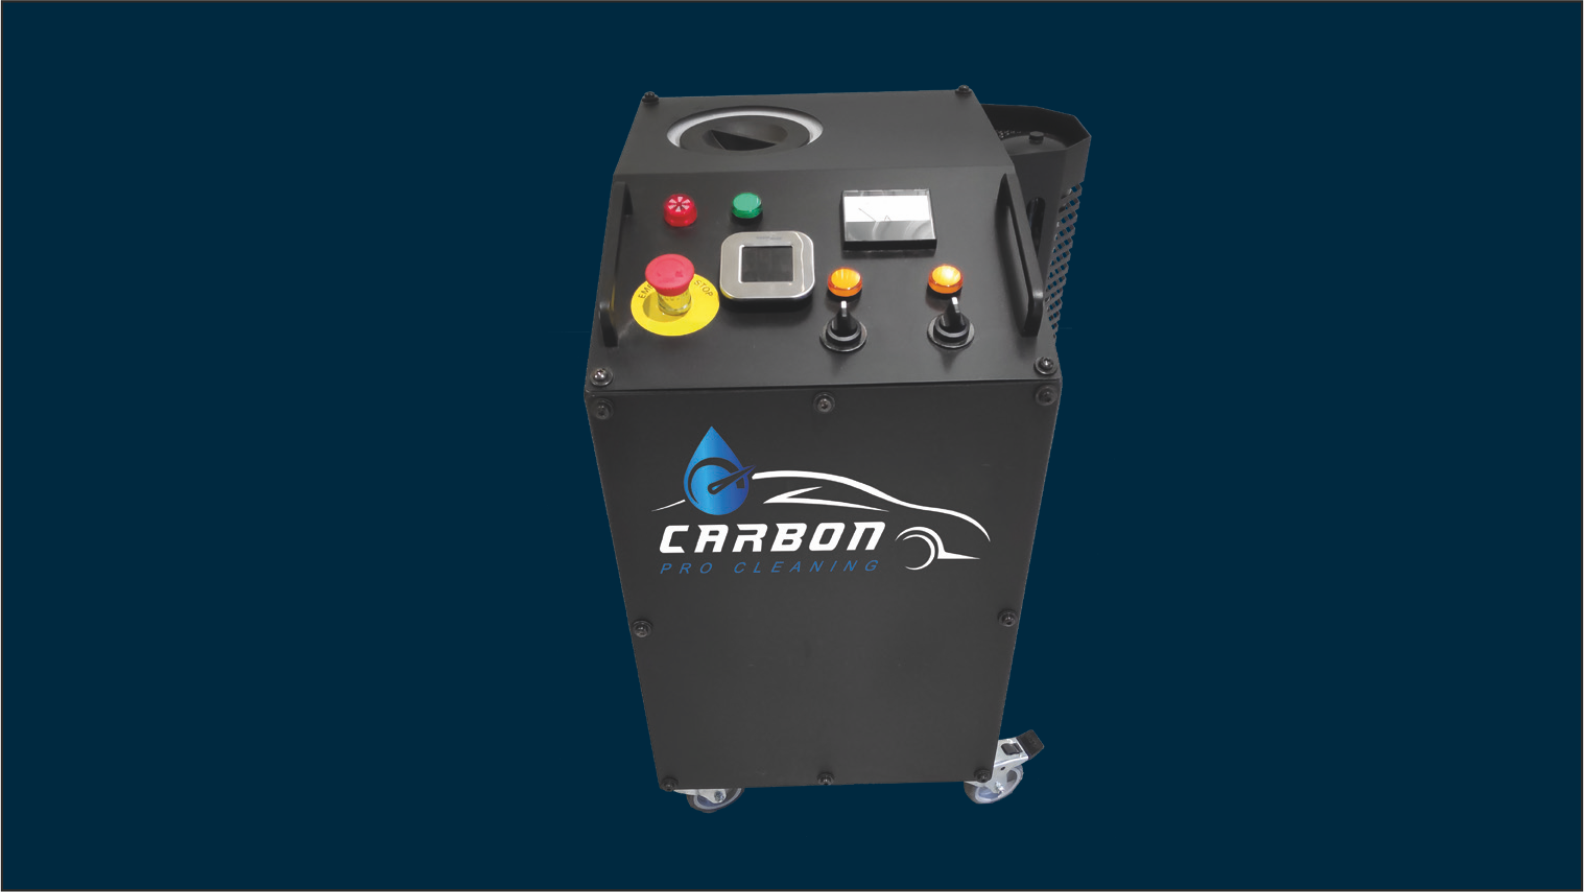 Carbon Pro Cleaning